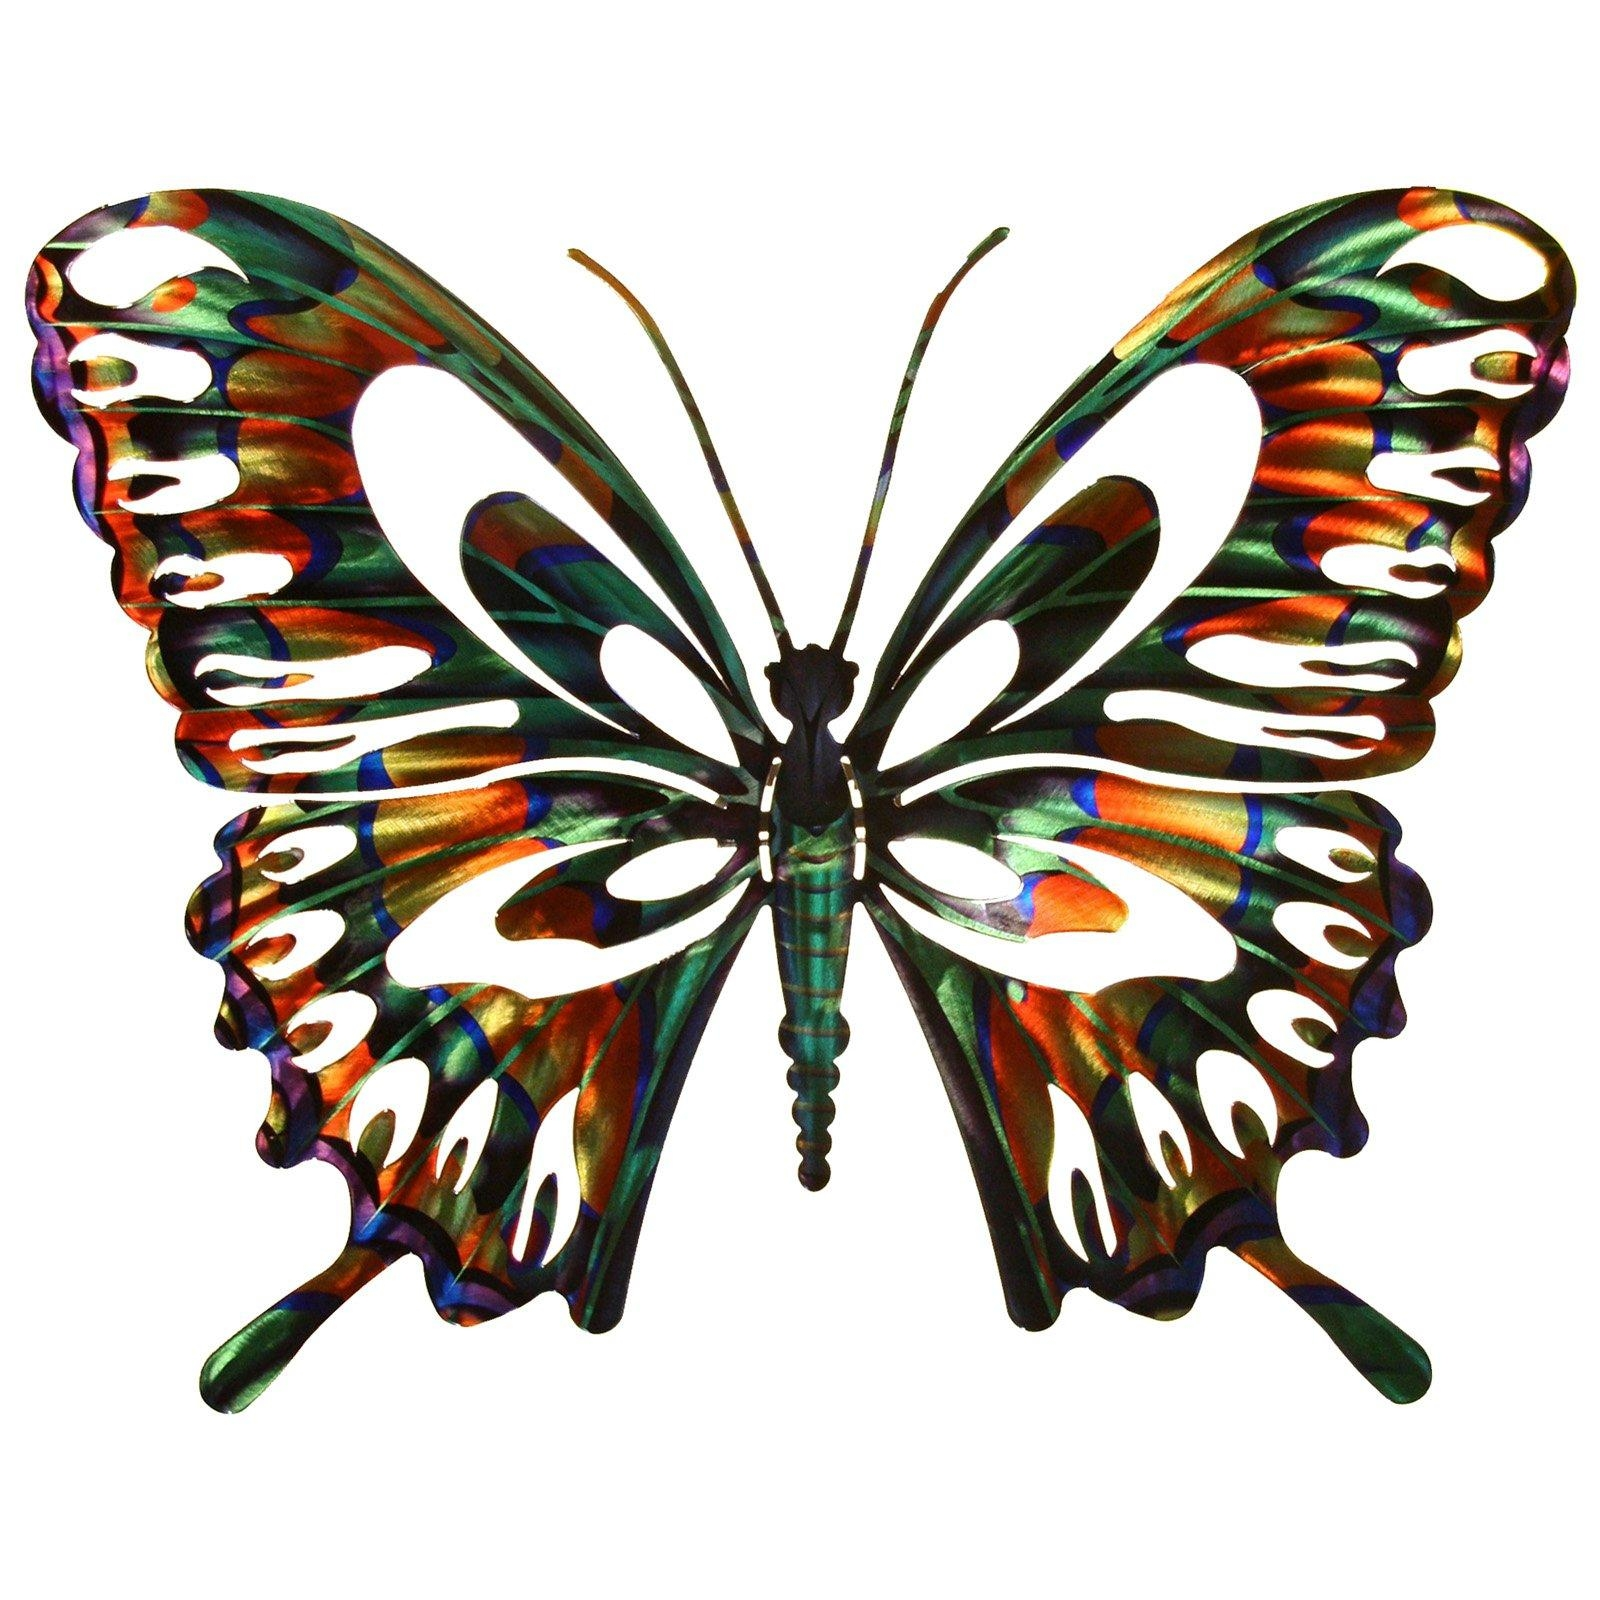 3D Butterfly Metal Outdoor Wall Art | Hayneedle Regarding Large Metal Butterfly Wall Art (View 10 of 20)